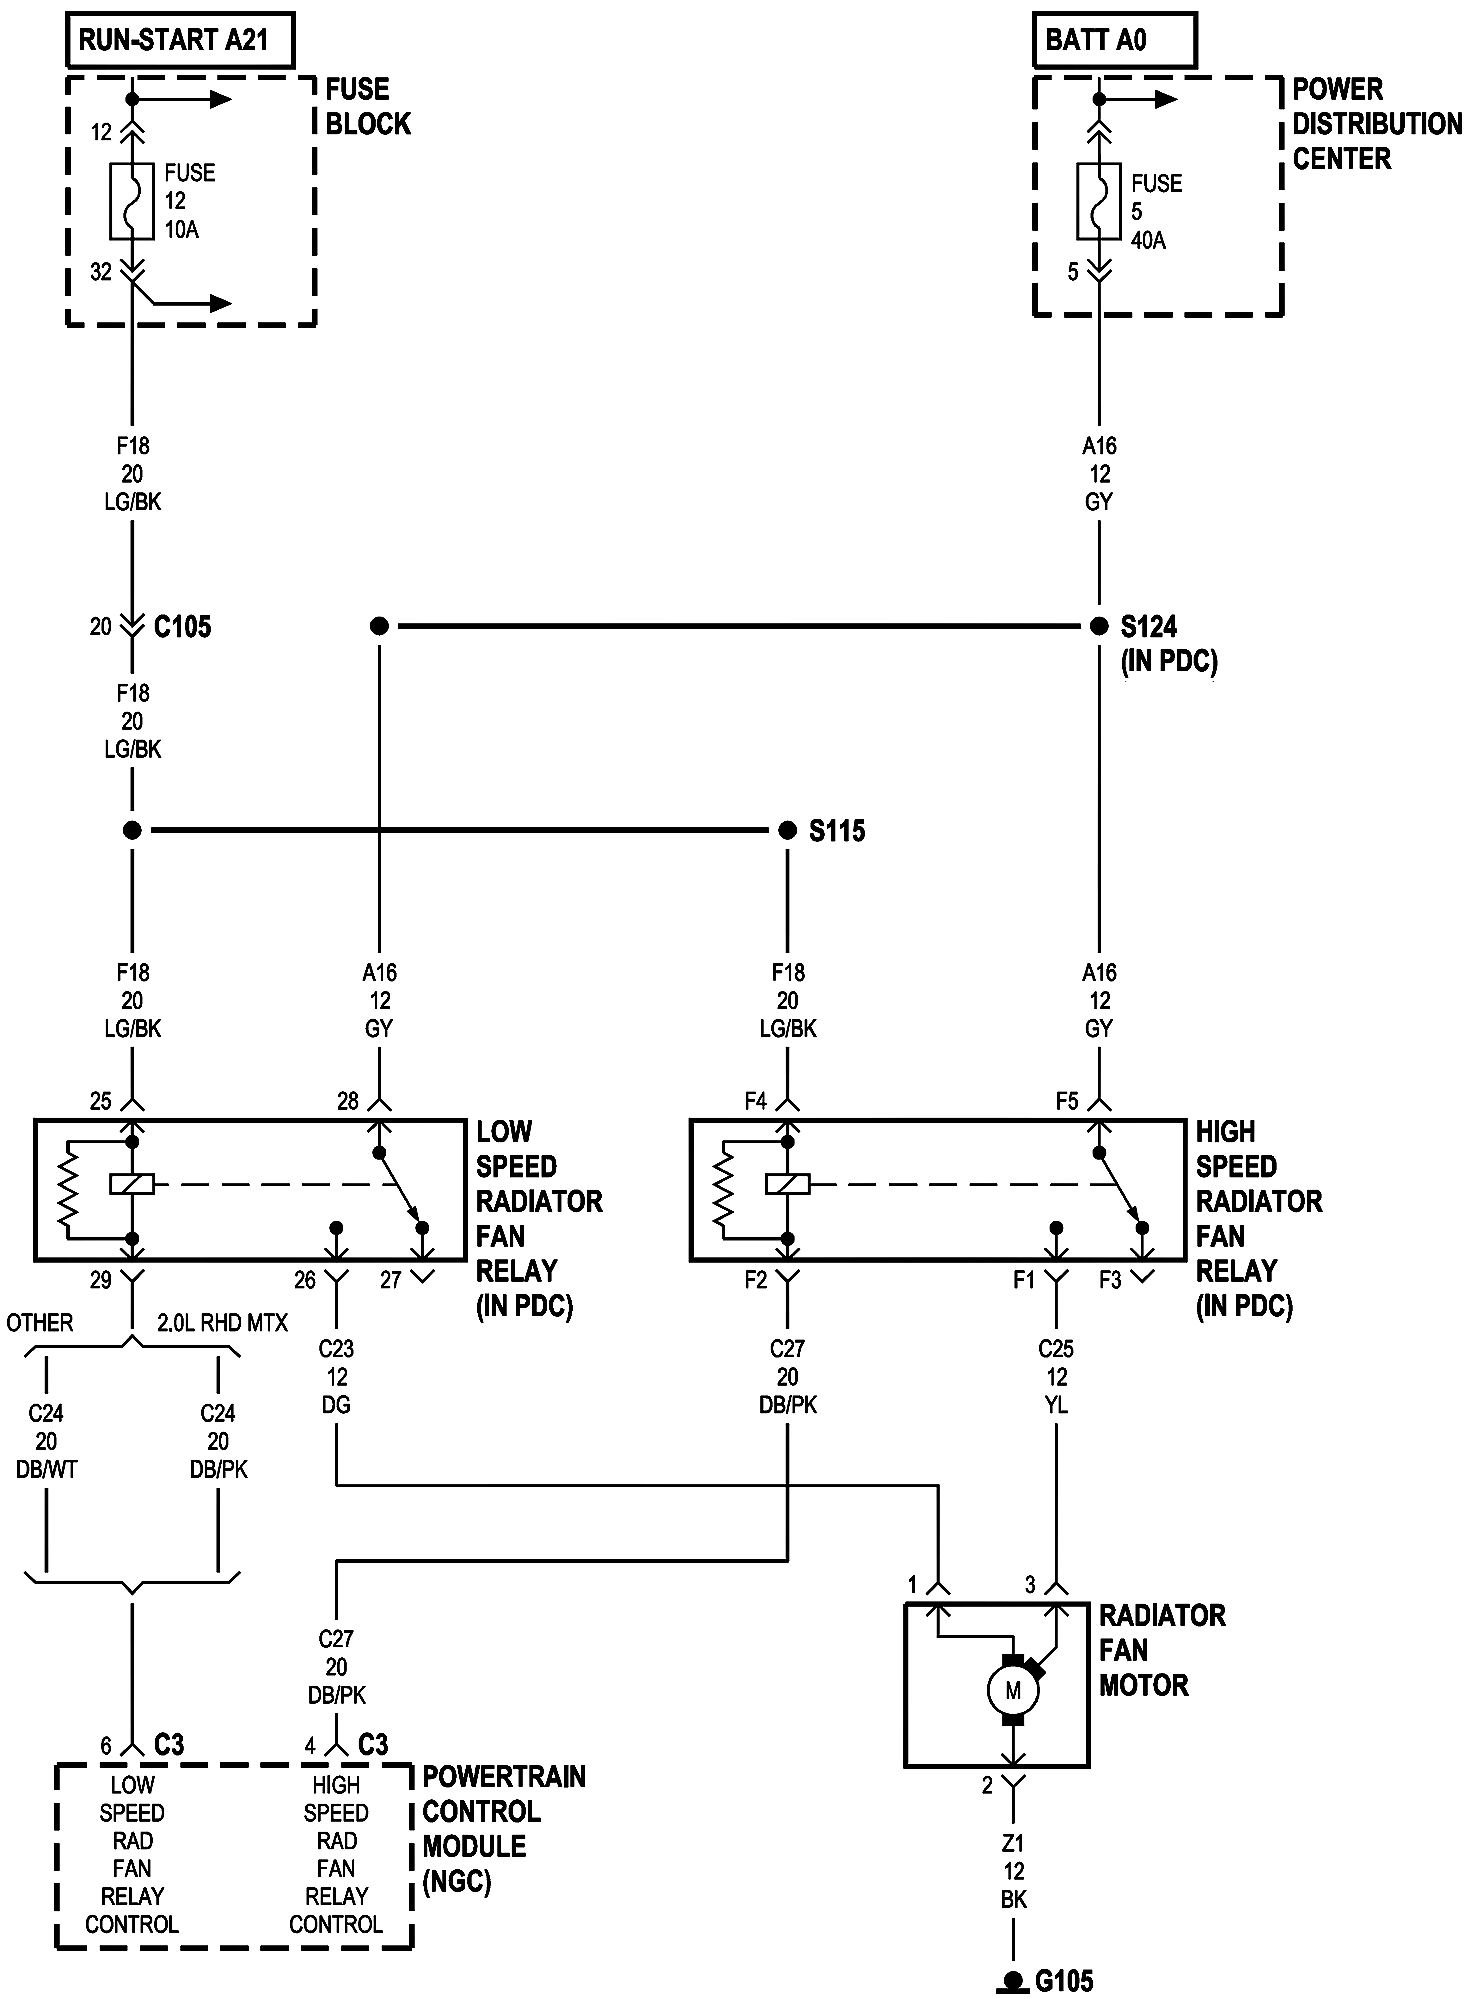 02 isuzu axiom wiring diagram  isuzu  auto wiring diagram